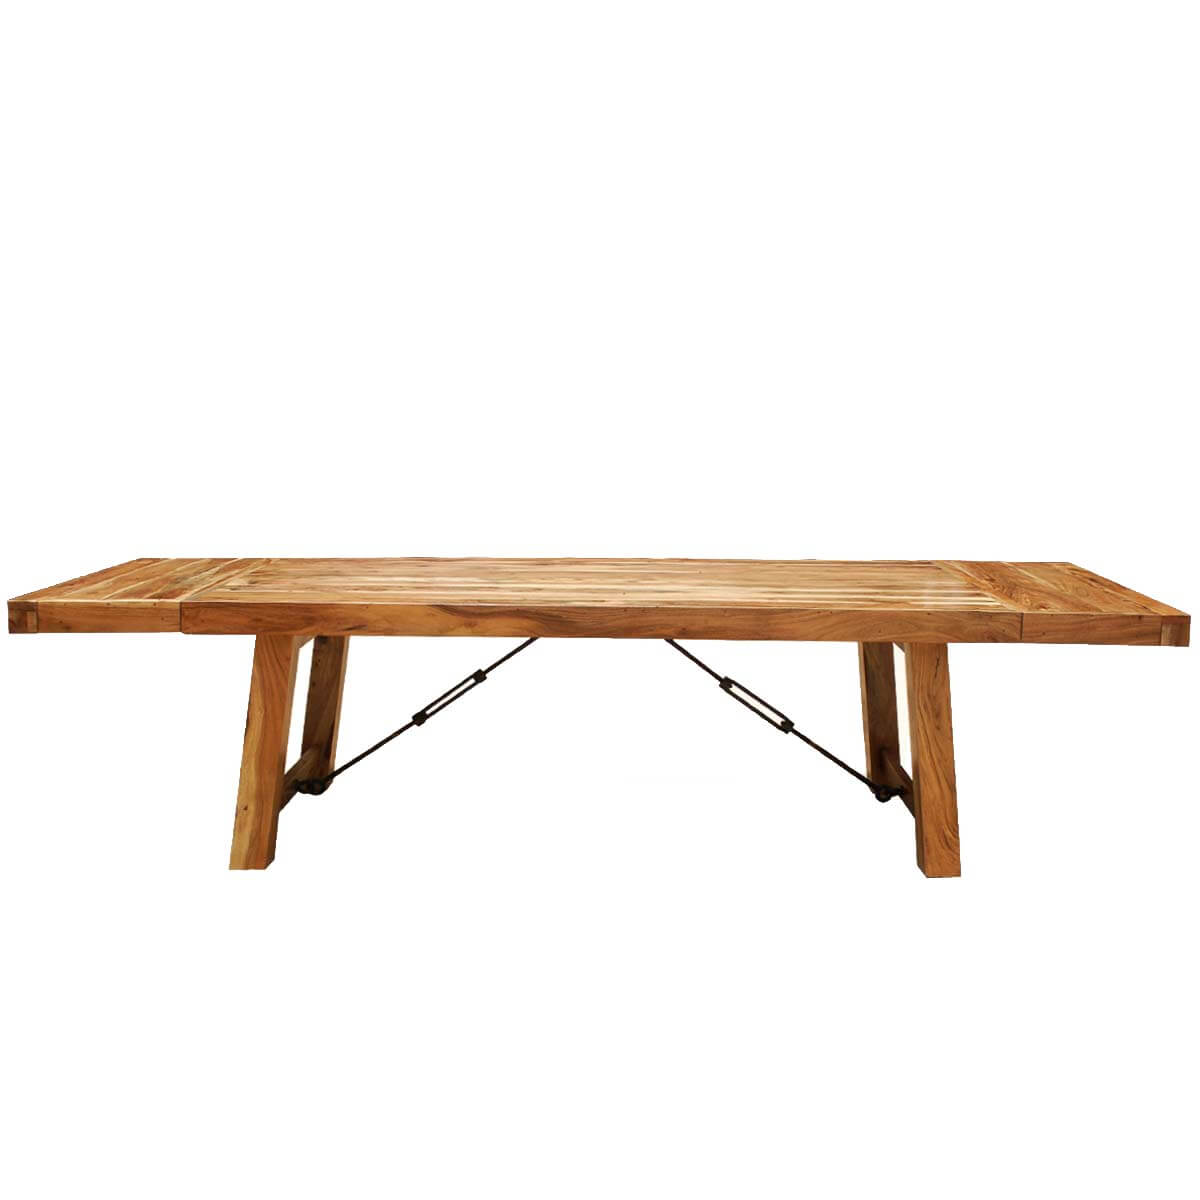 Santa Fe Rustic Wood Large Extendable Dining Room Table